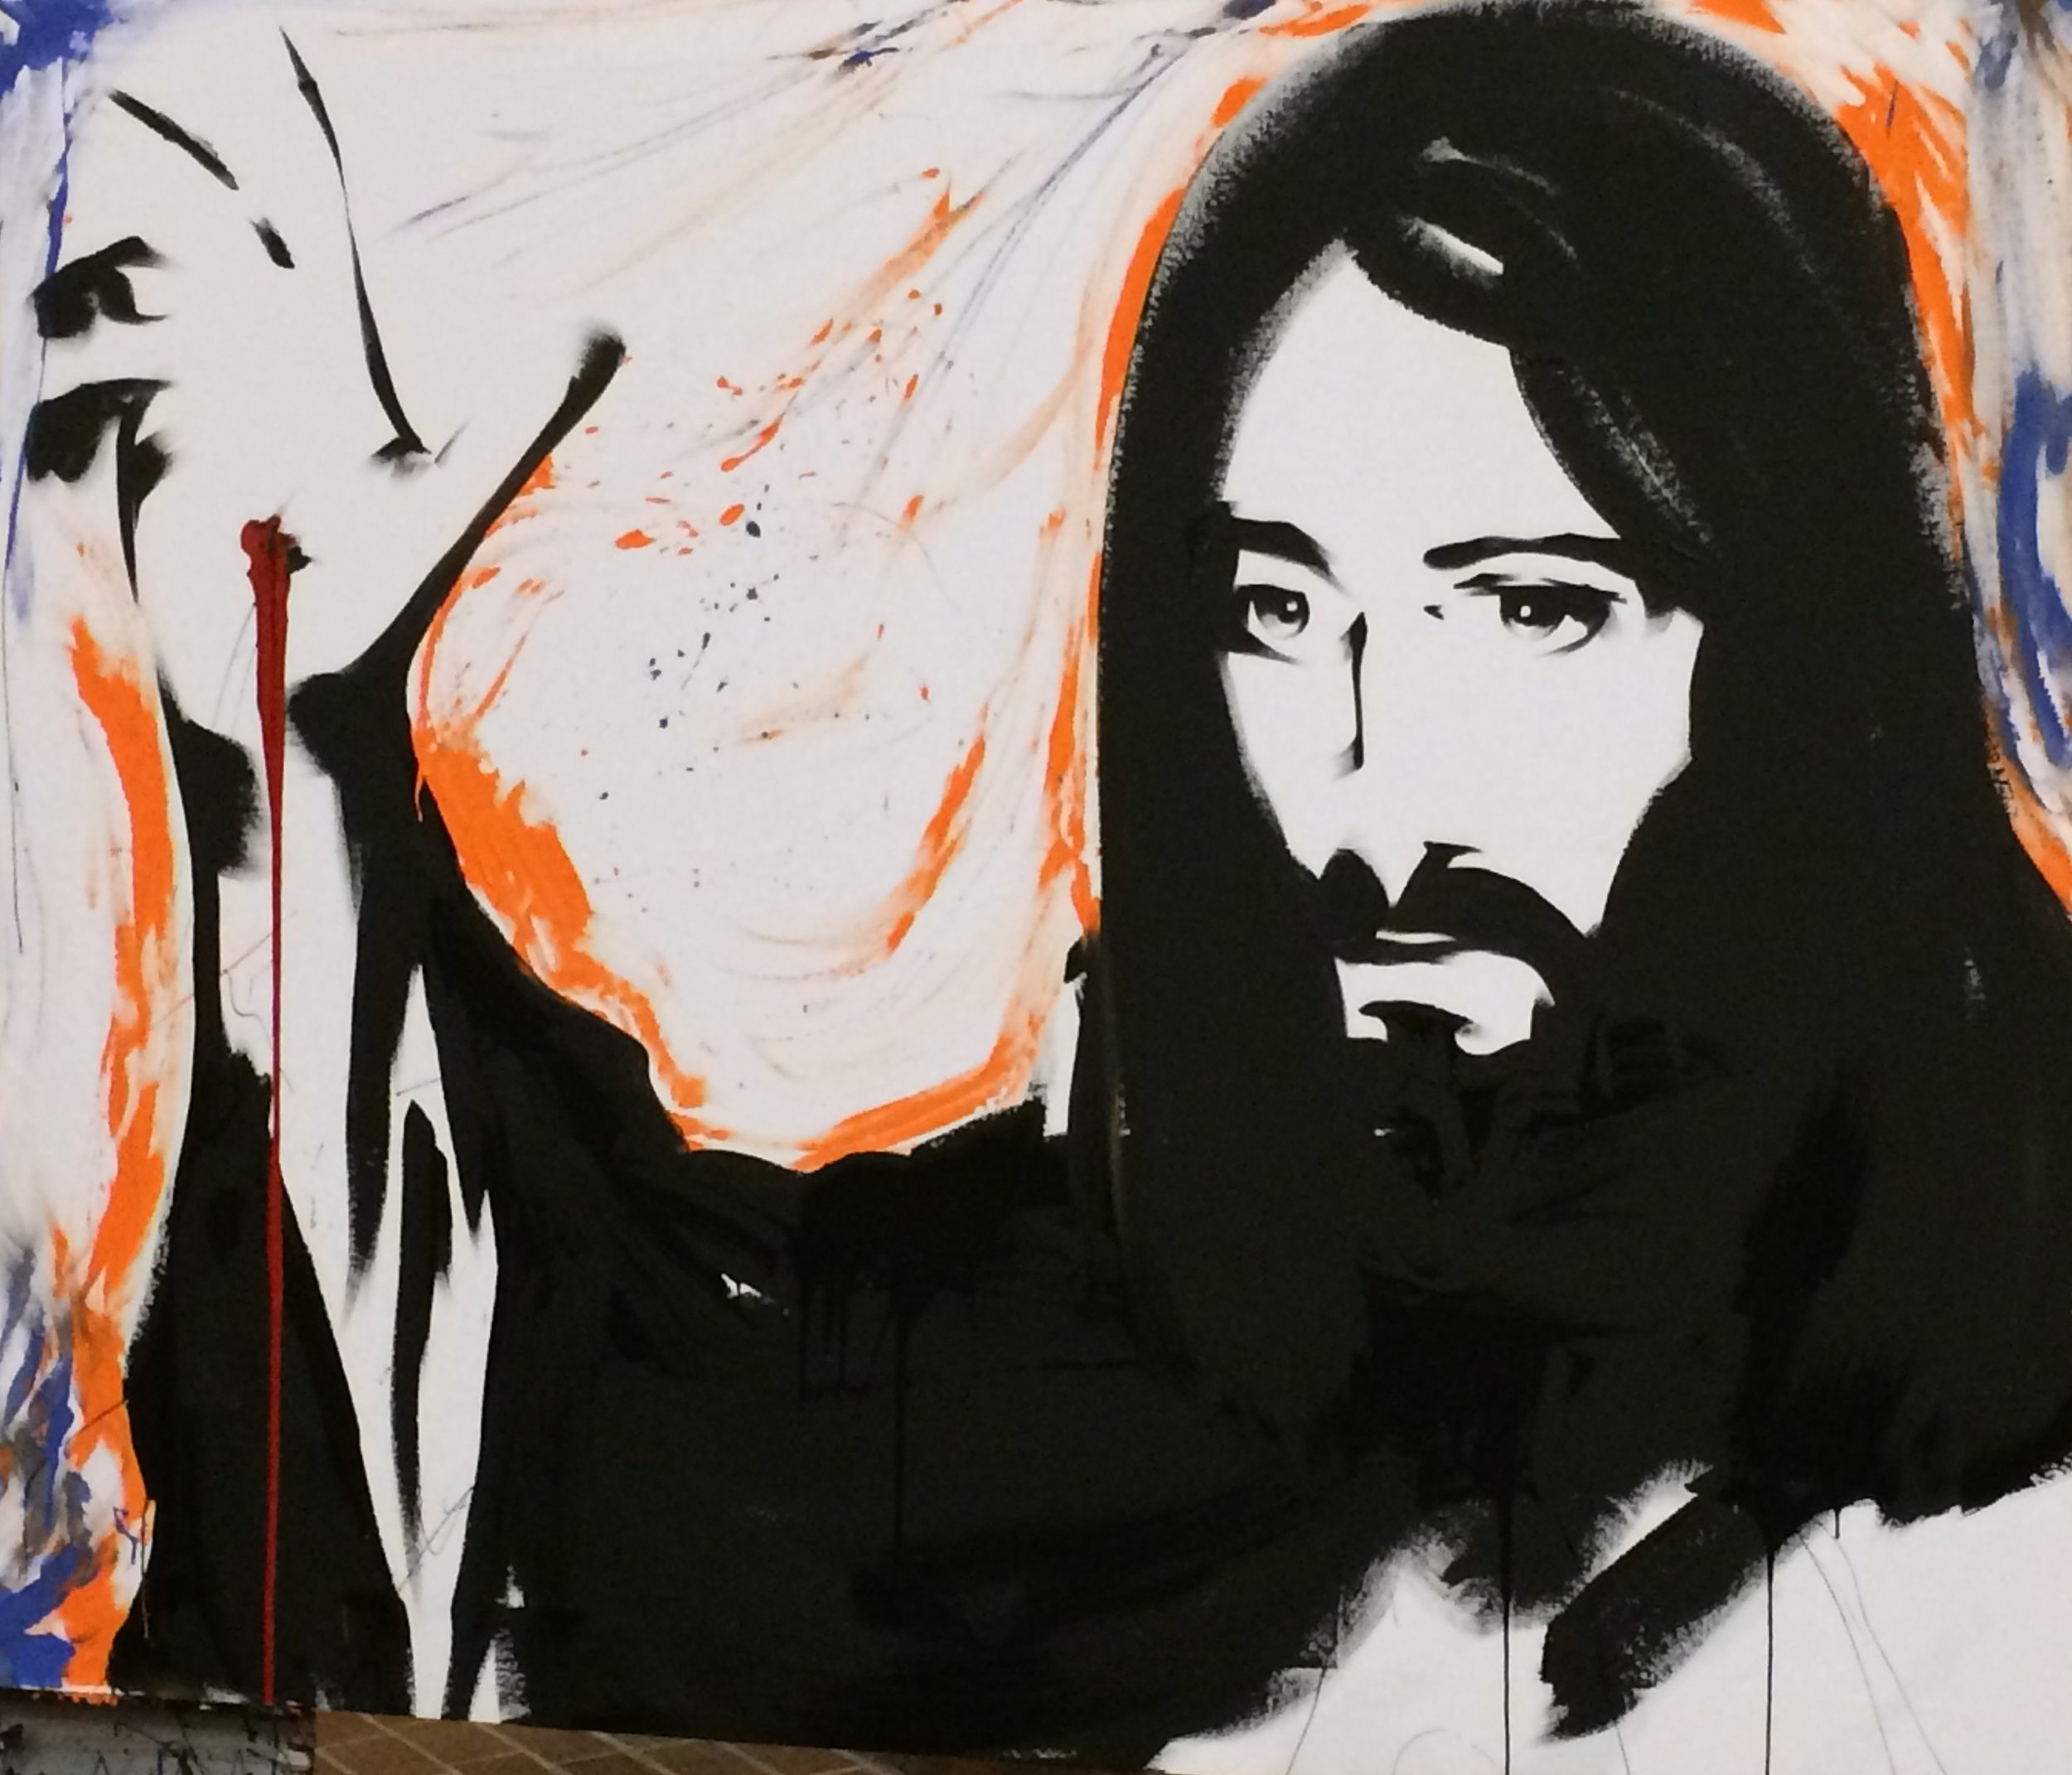 Jesus painter